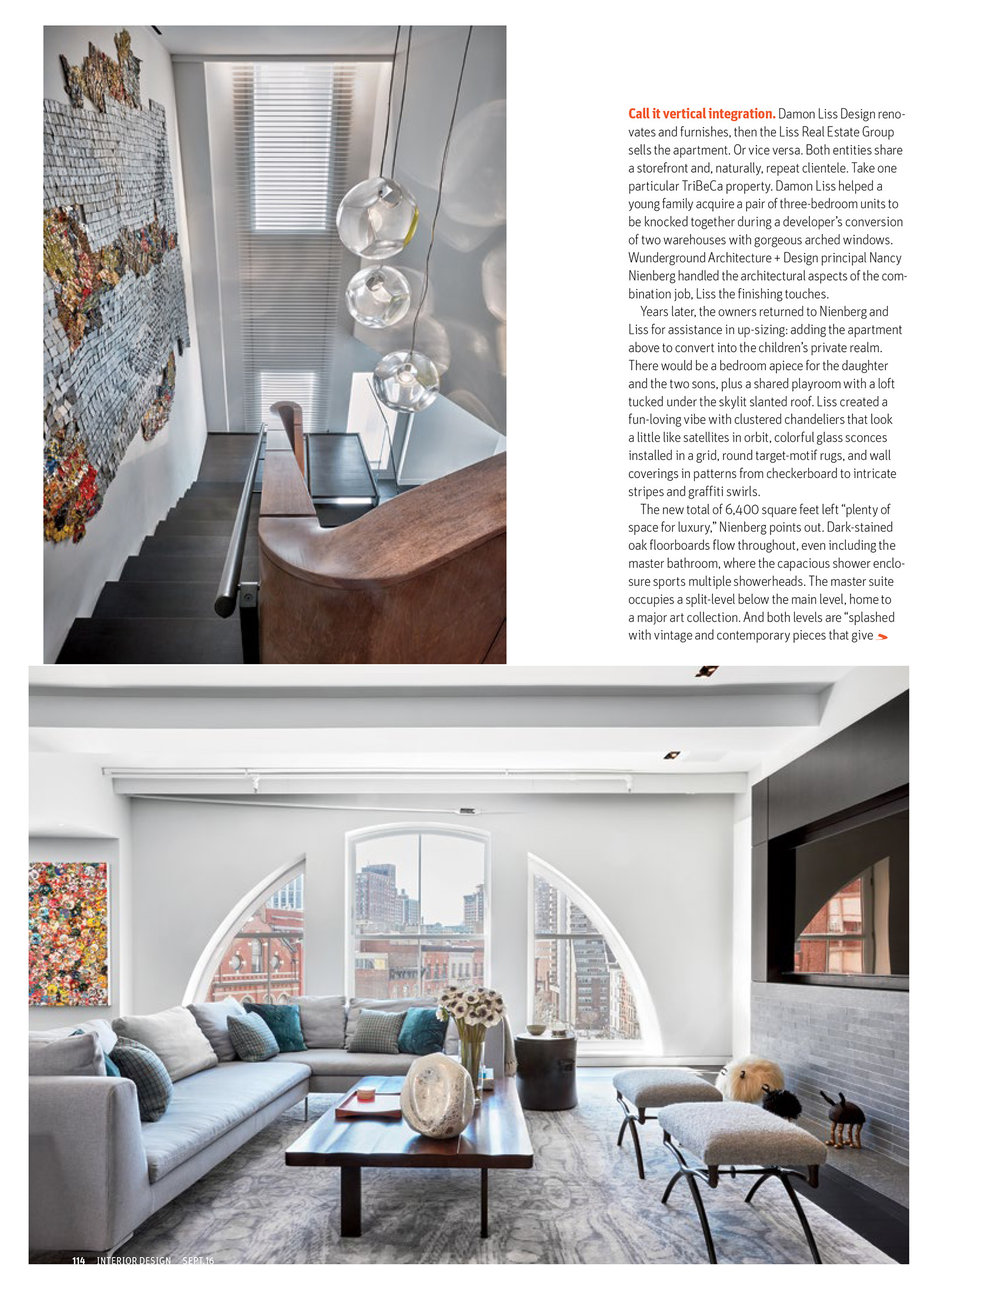 Interior-Design_161-Duane-St_Oct-16_Page-2A.jpg